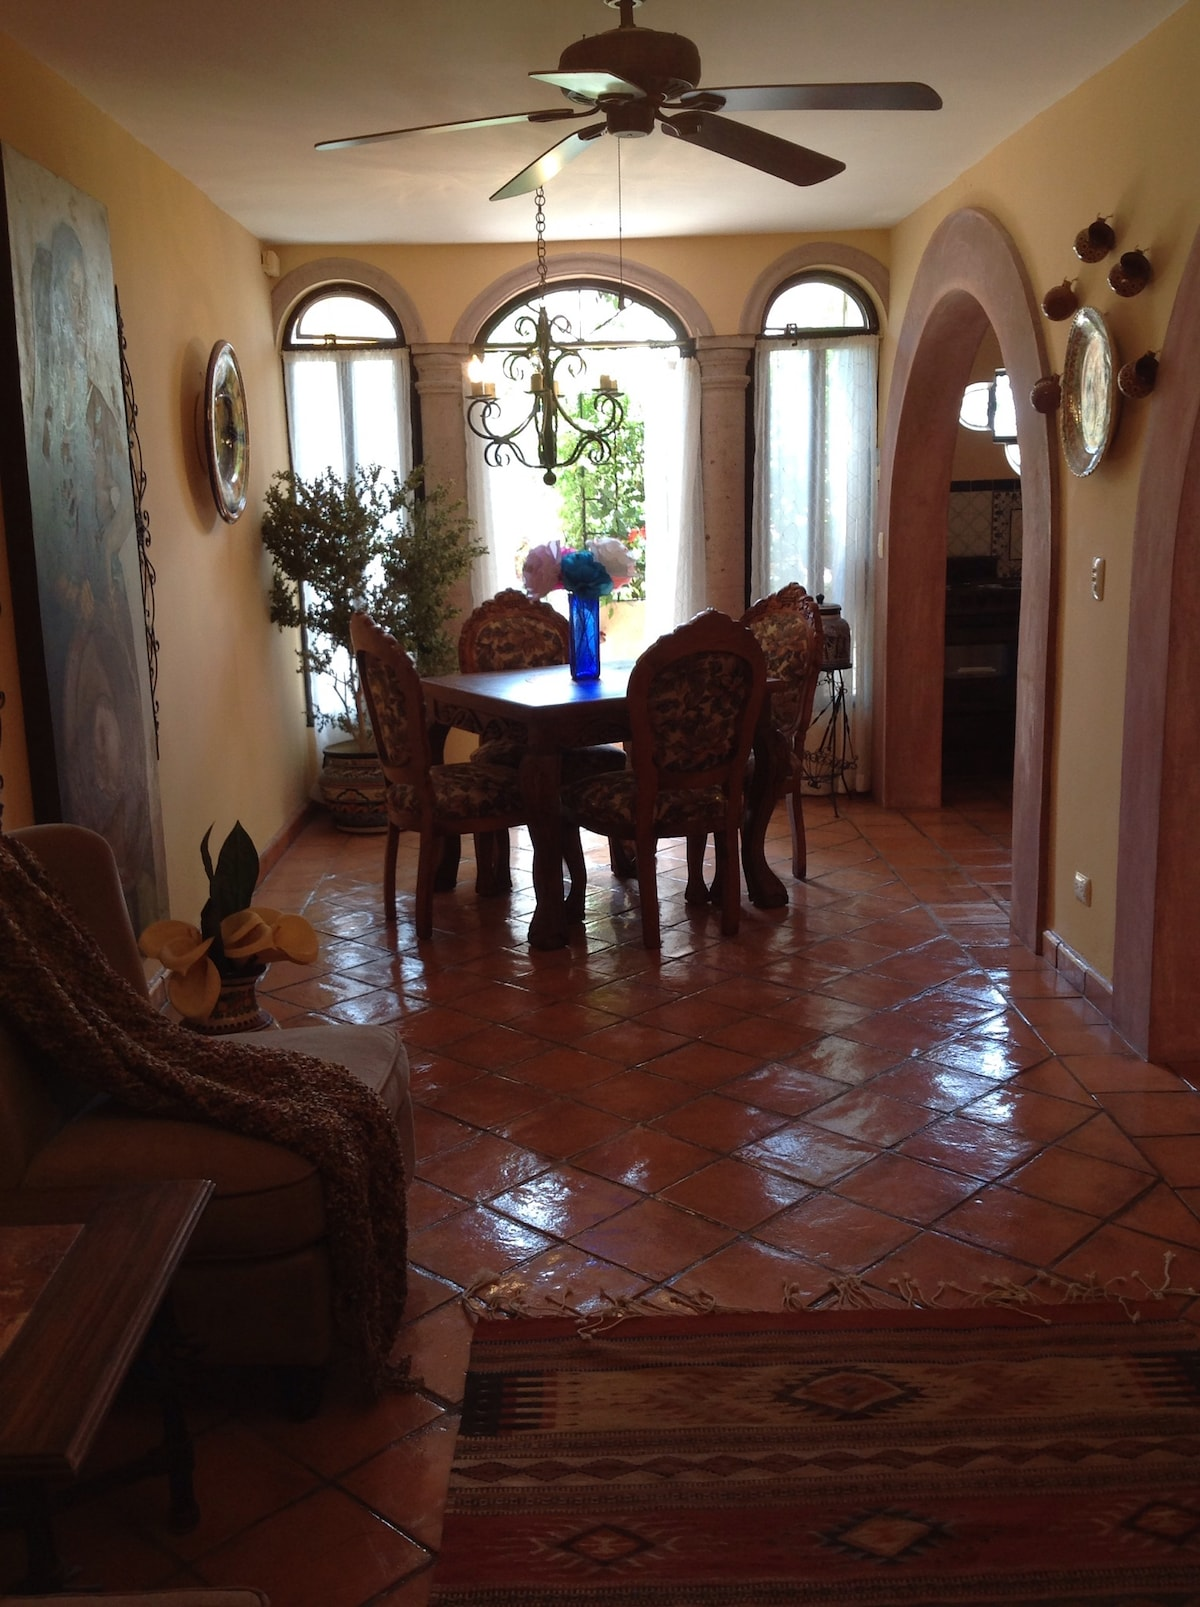 Looking from the fireplace to the dining area; the kitchen is through the arch on the right.